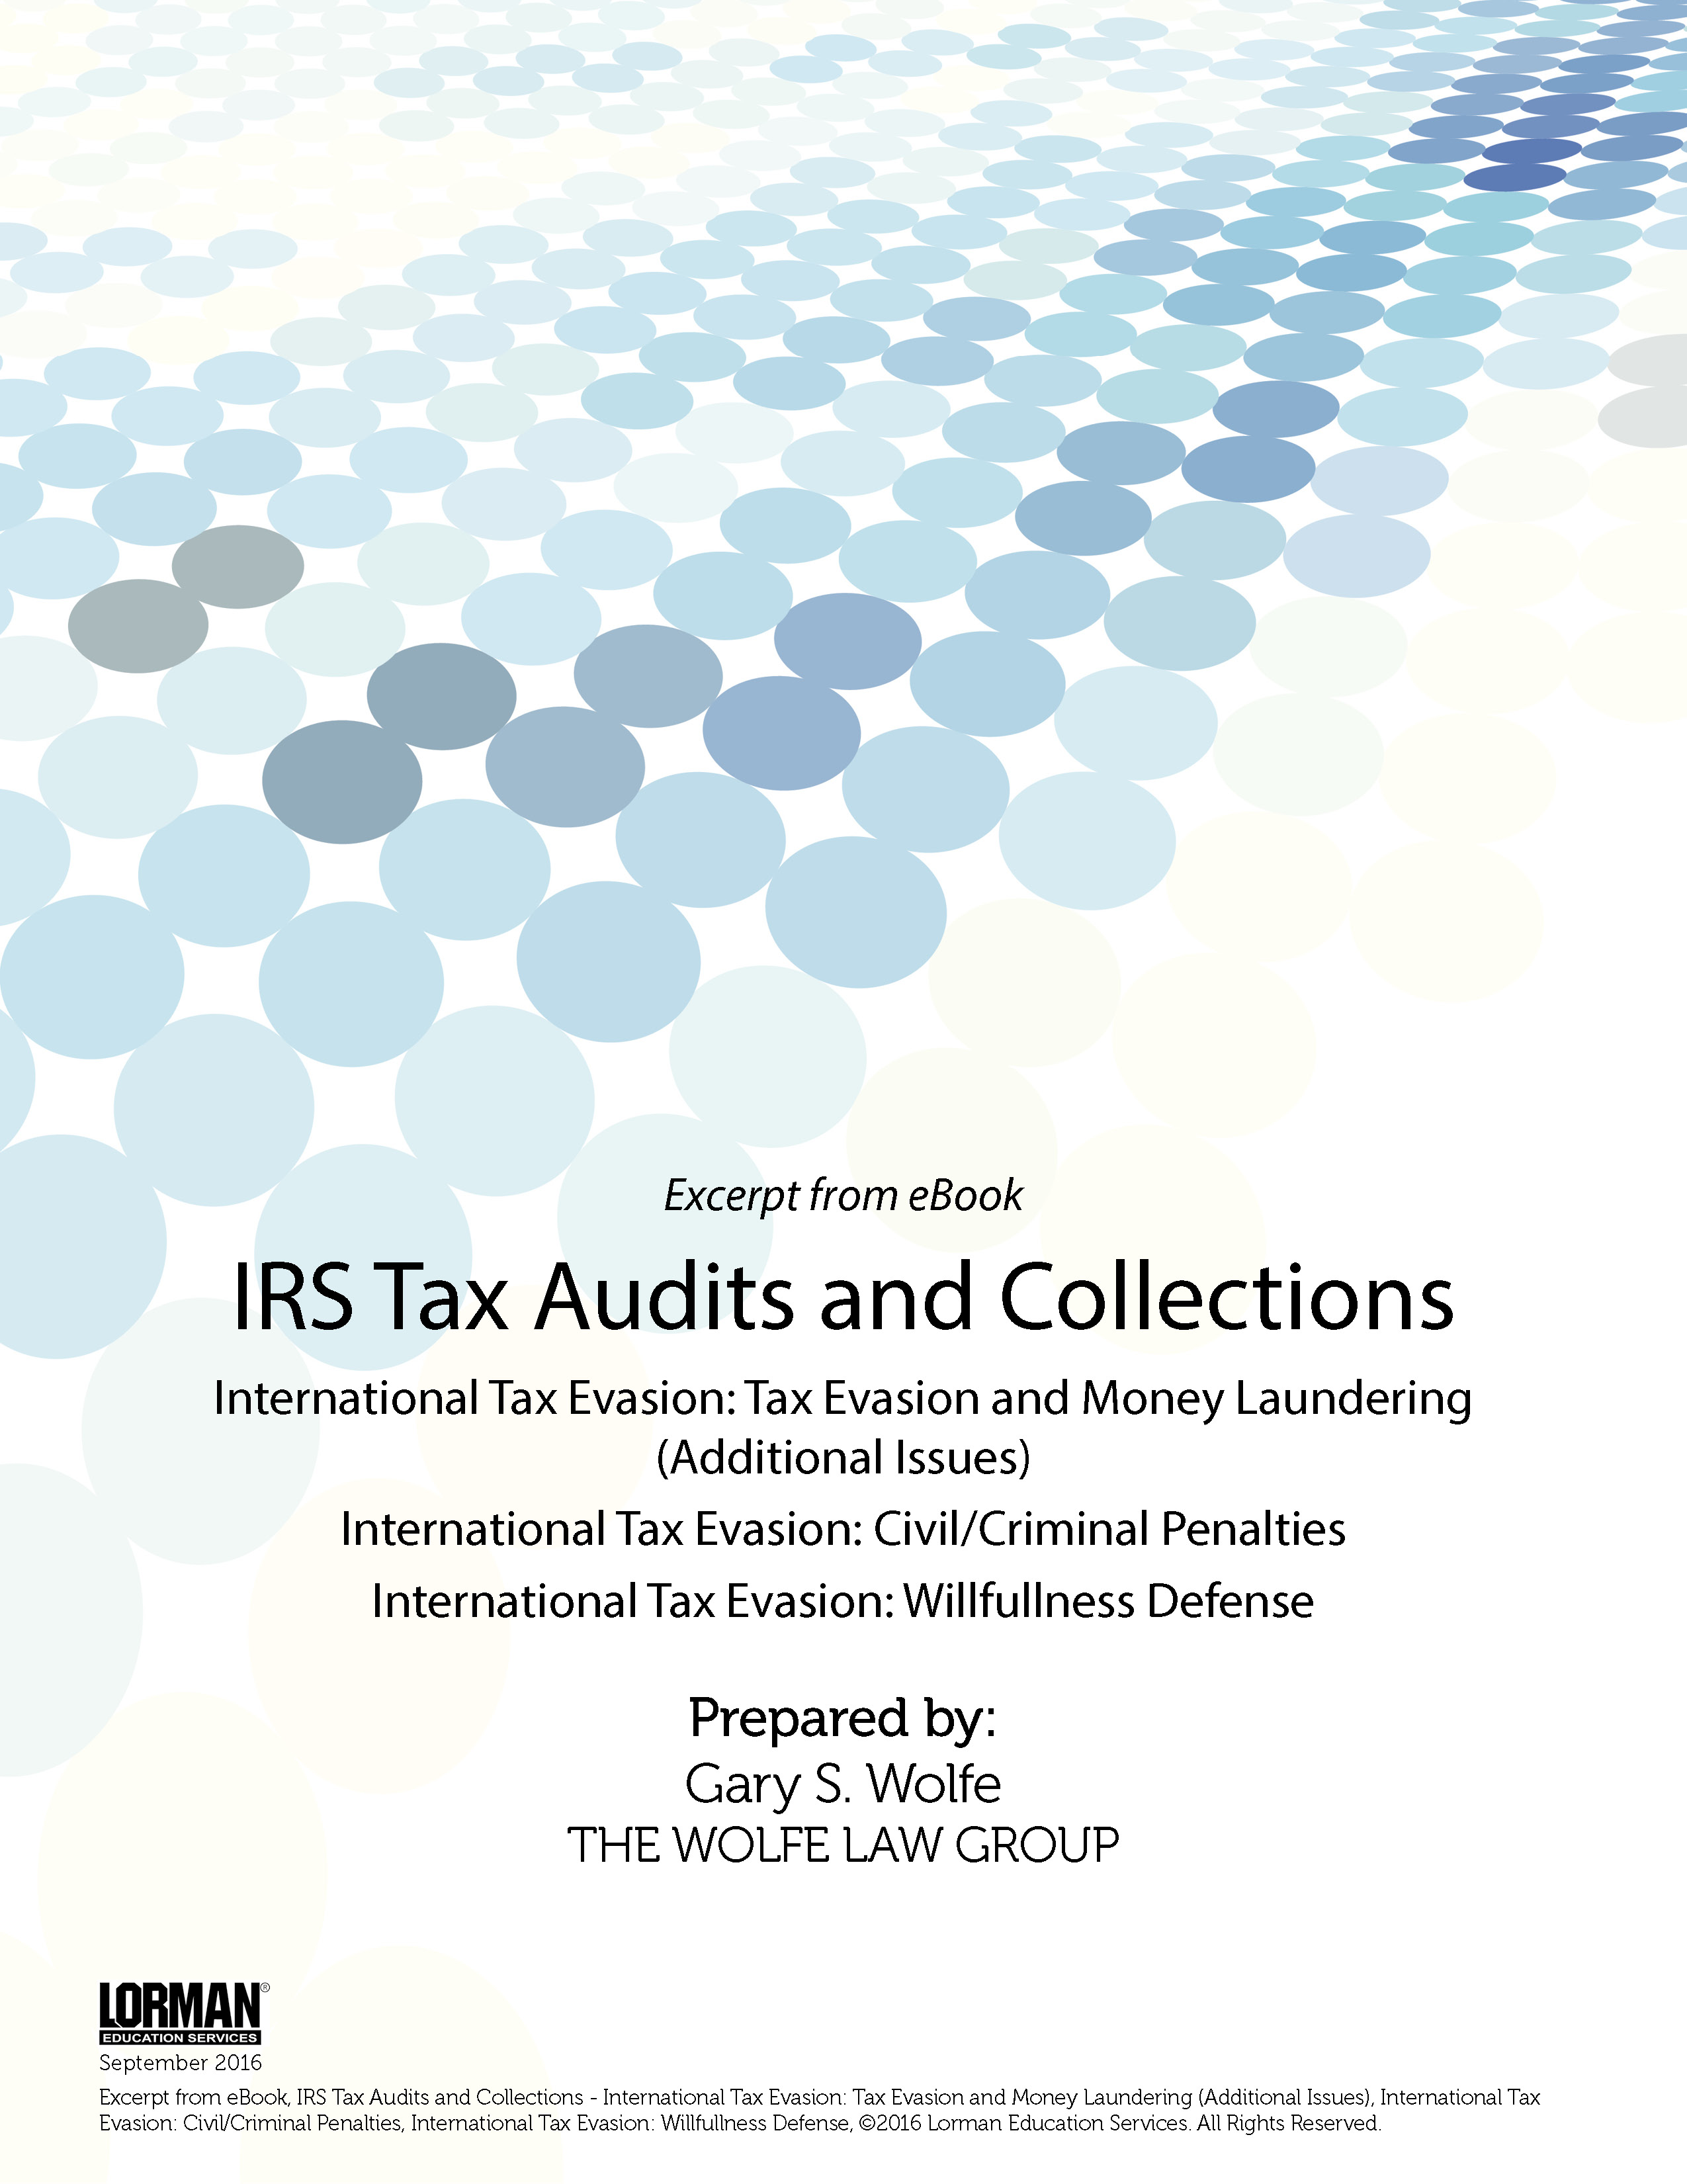 IRS Tax Audits and Collections: International Tax Evasion: Money Laundering, Civil/Criminal Penalties, Willfullness Defense